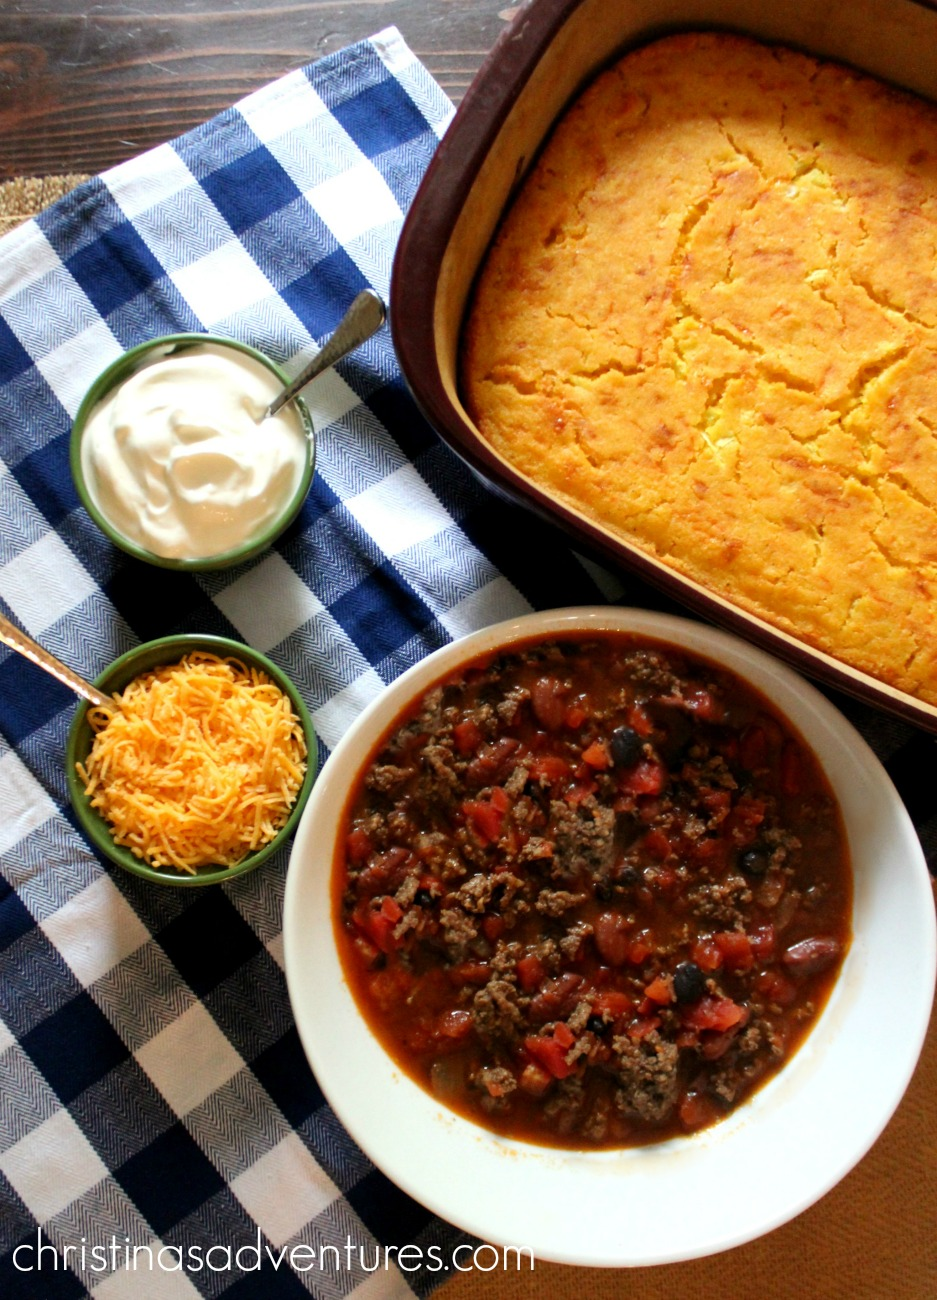 The BEST Chili & Cornbread you'll ever eat!